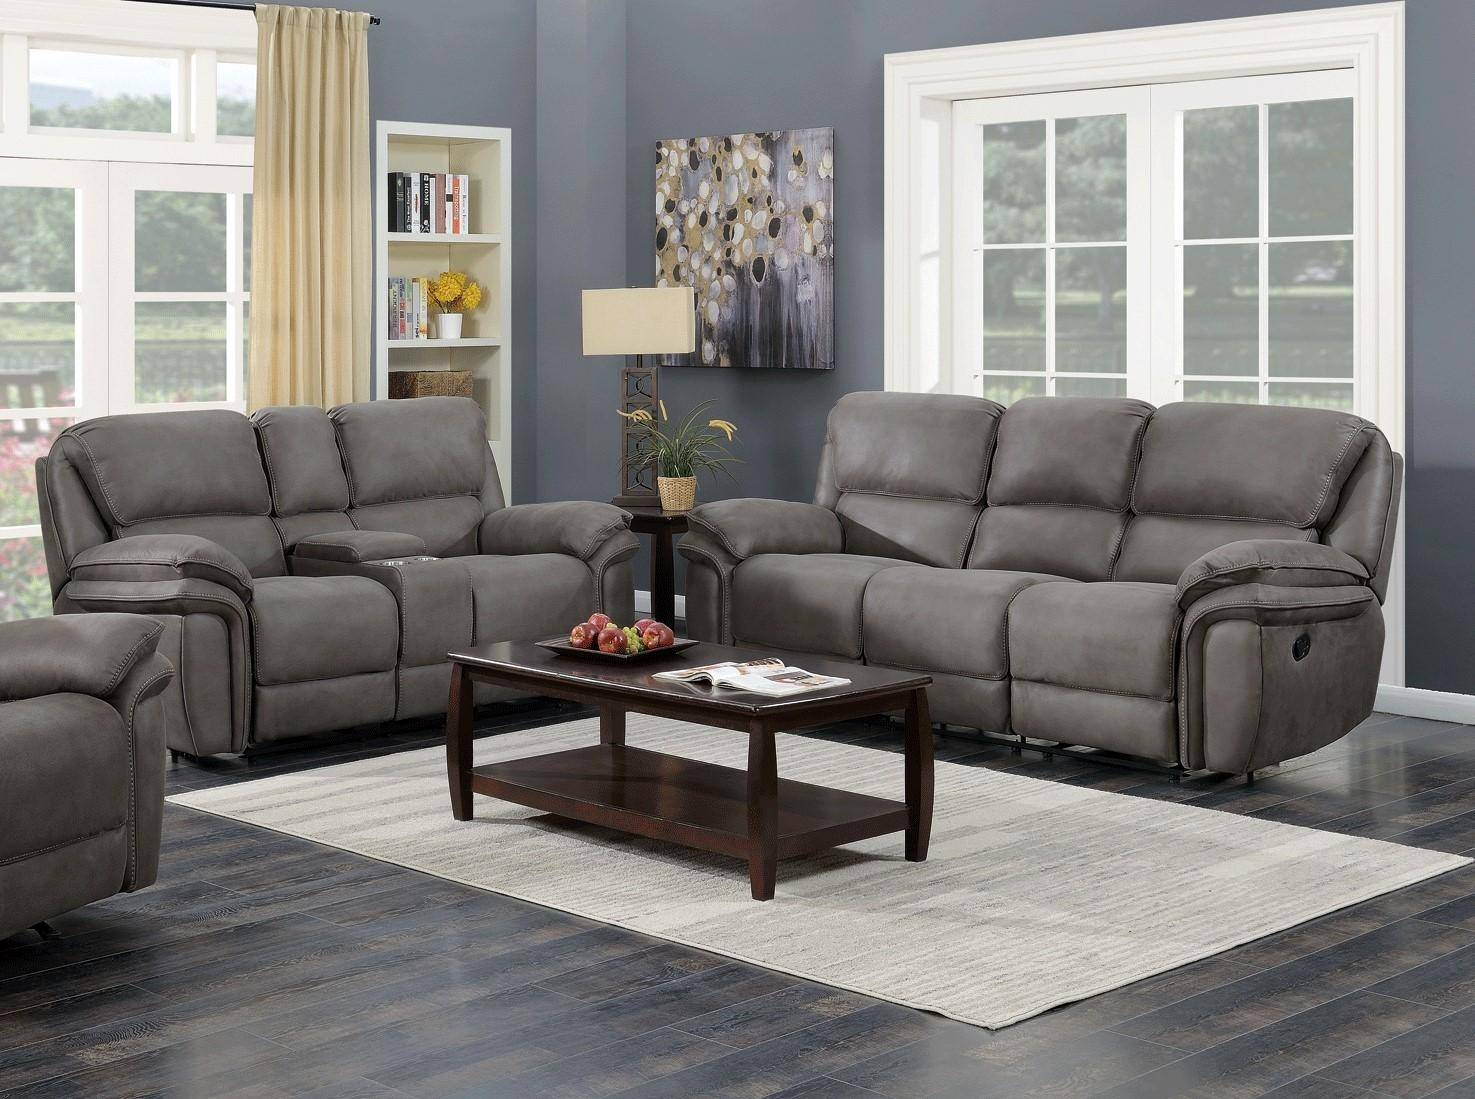 Contemporary Gray Faux Leather Living